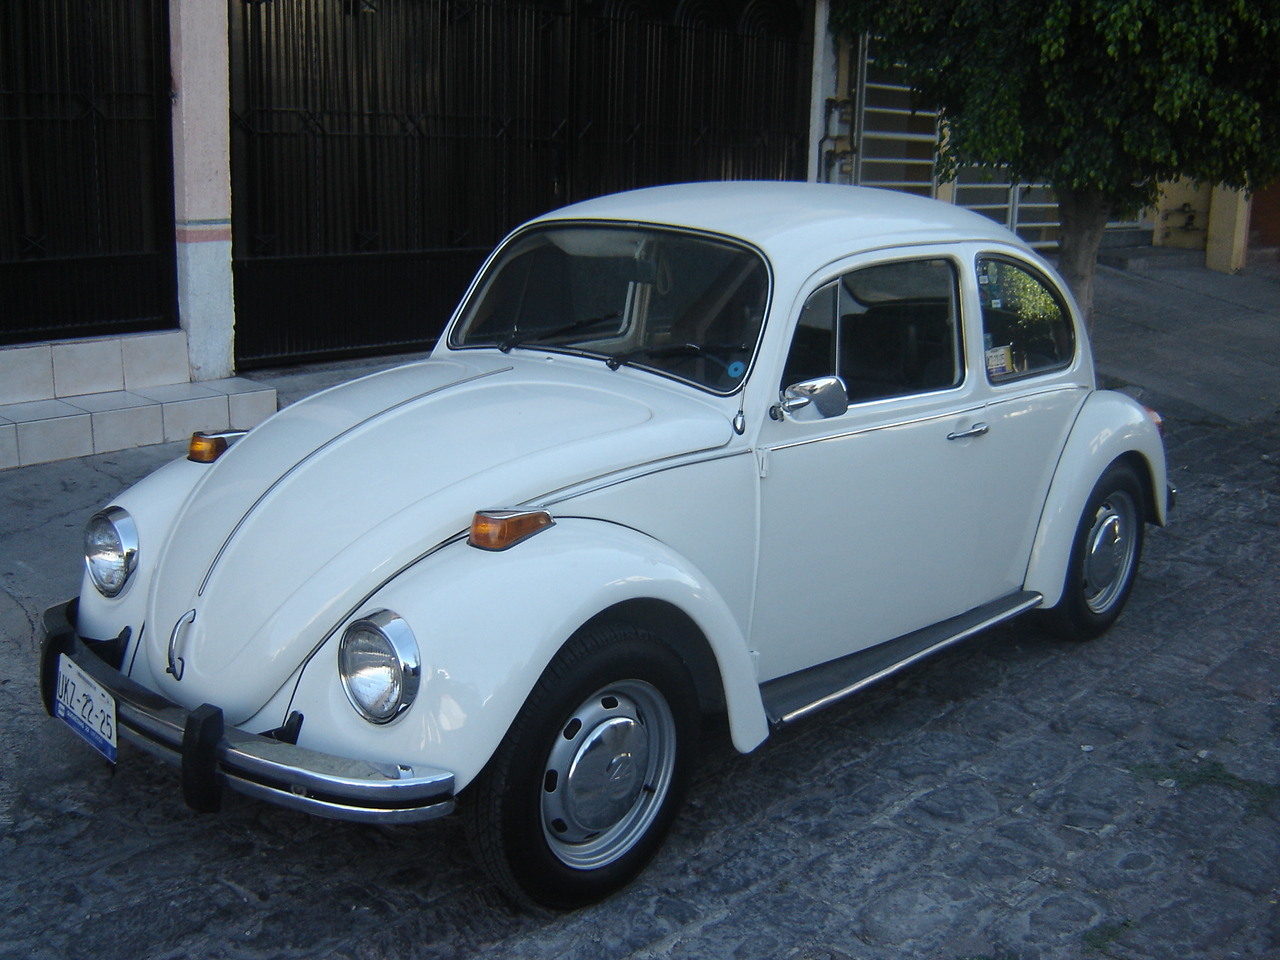 1974 volkswagen beetle classic automobiles. Black Bedroom Furniture Sets. Home Design Ideas